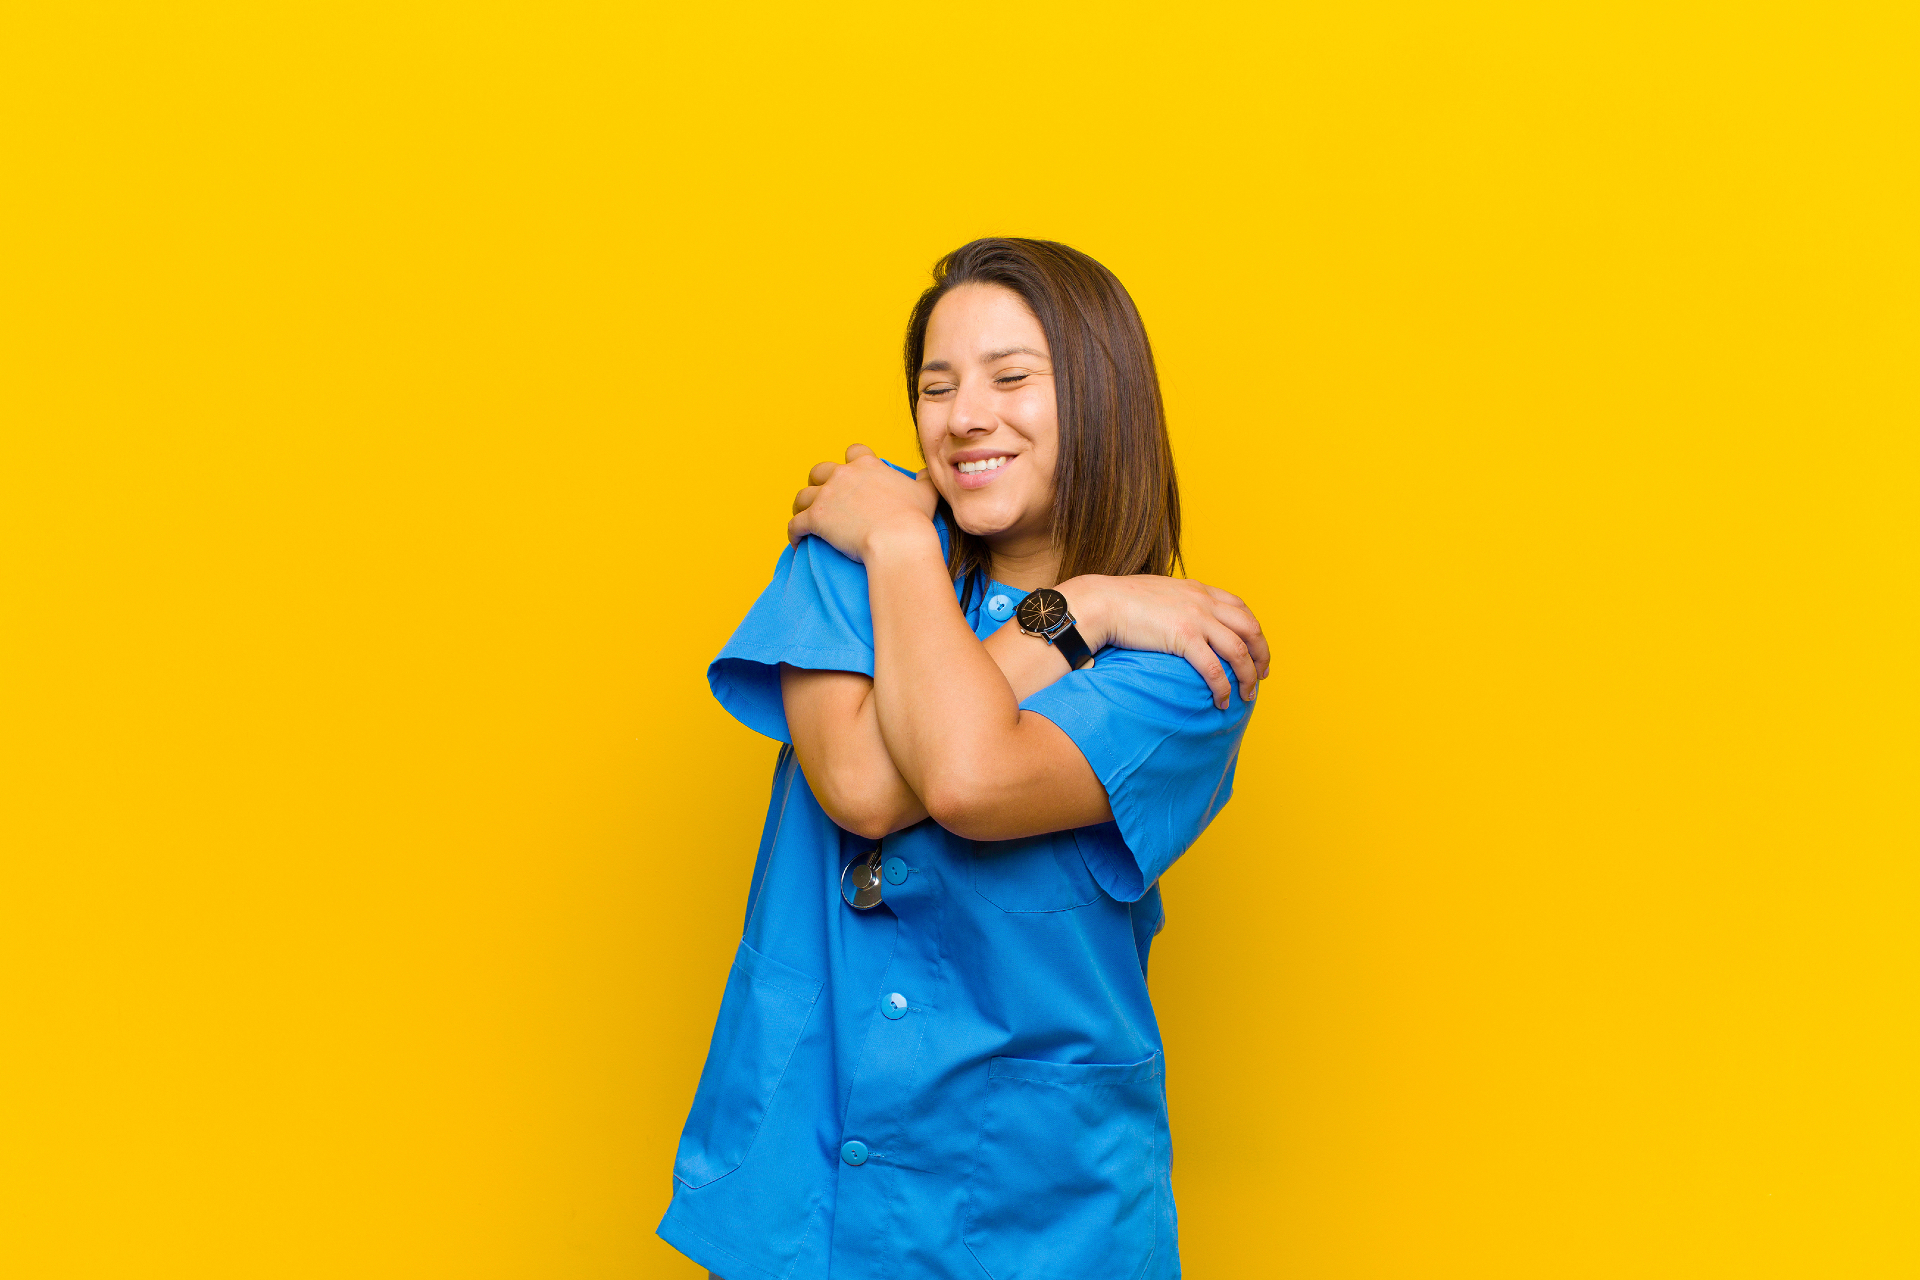 Midwife hugs herself against cheerful yellow background